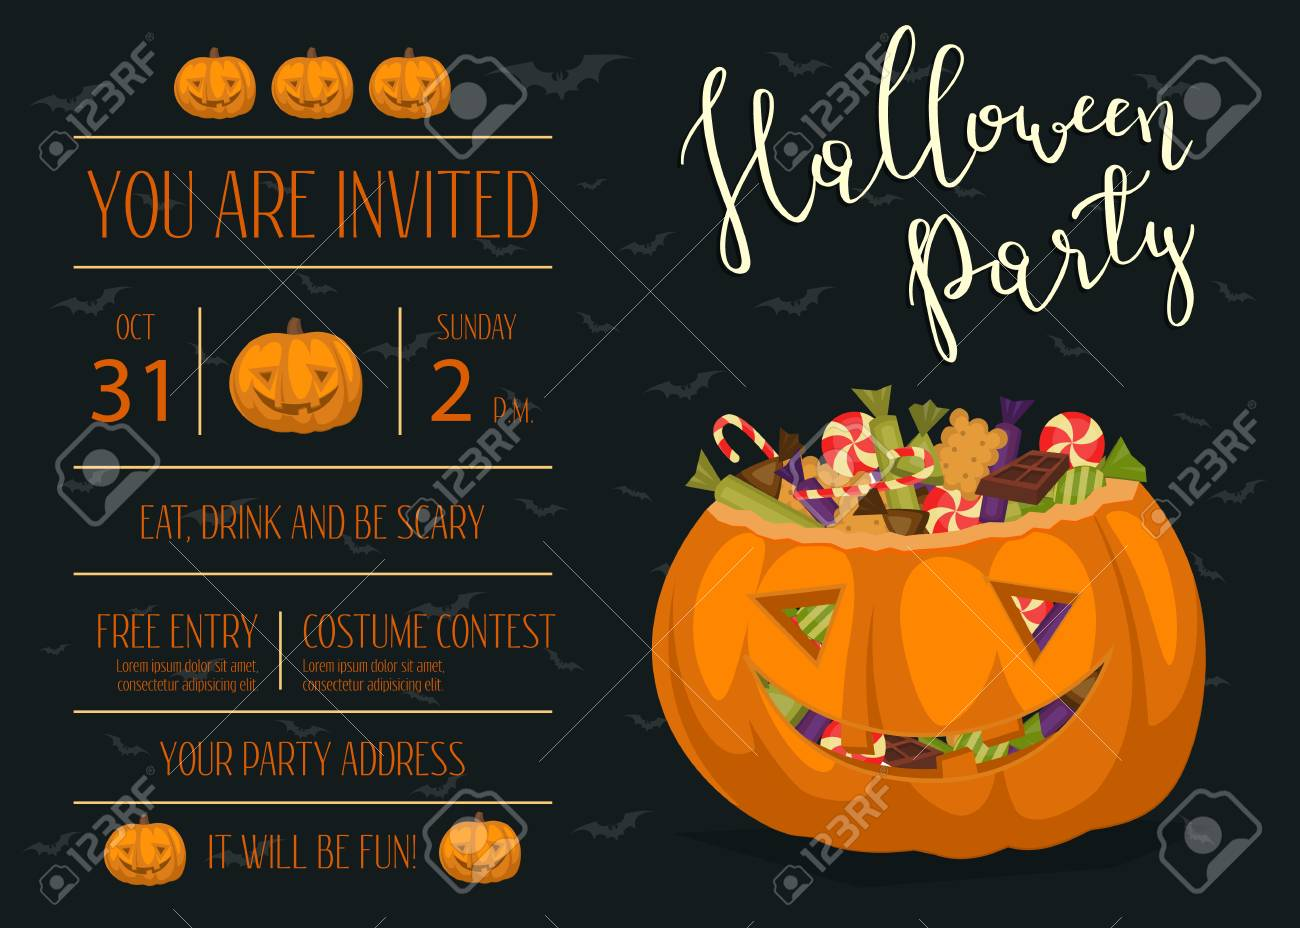 Vintage Halloween Party Invitation With Scary Pumpkin Head Jack ...